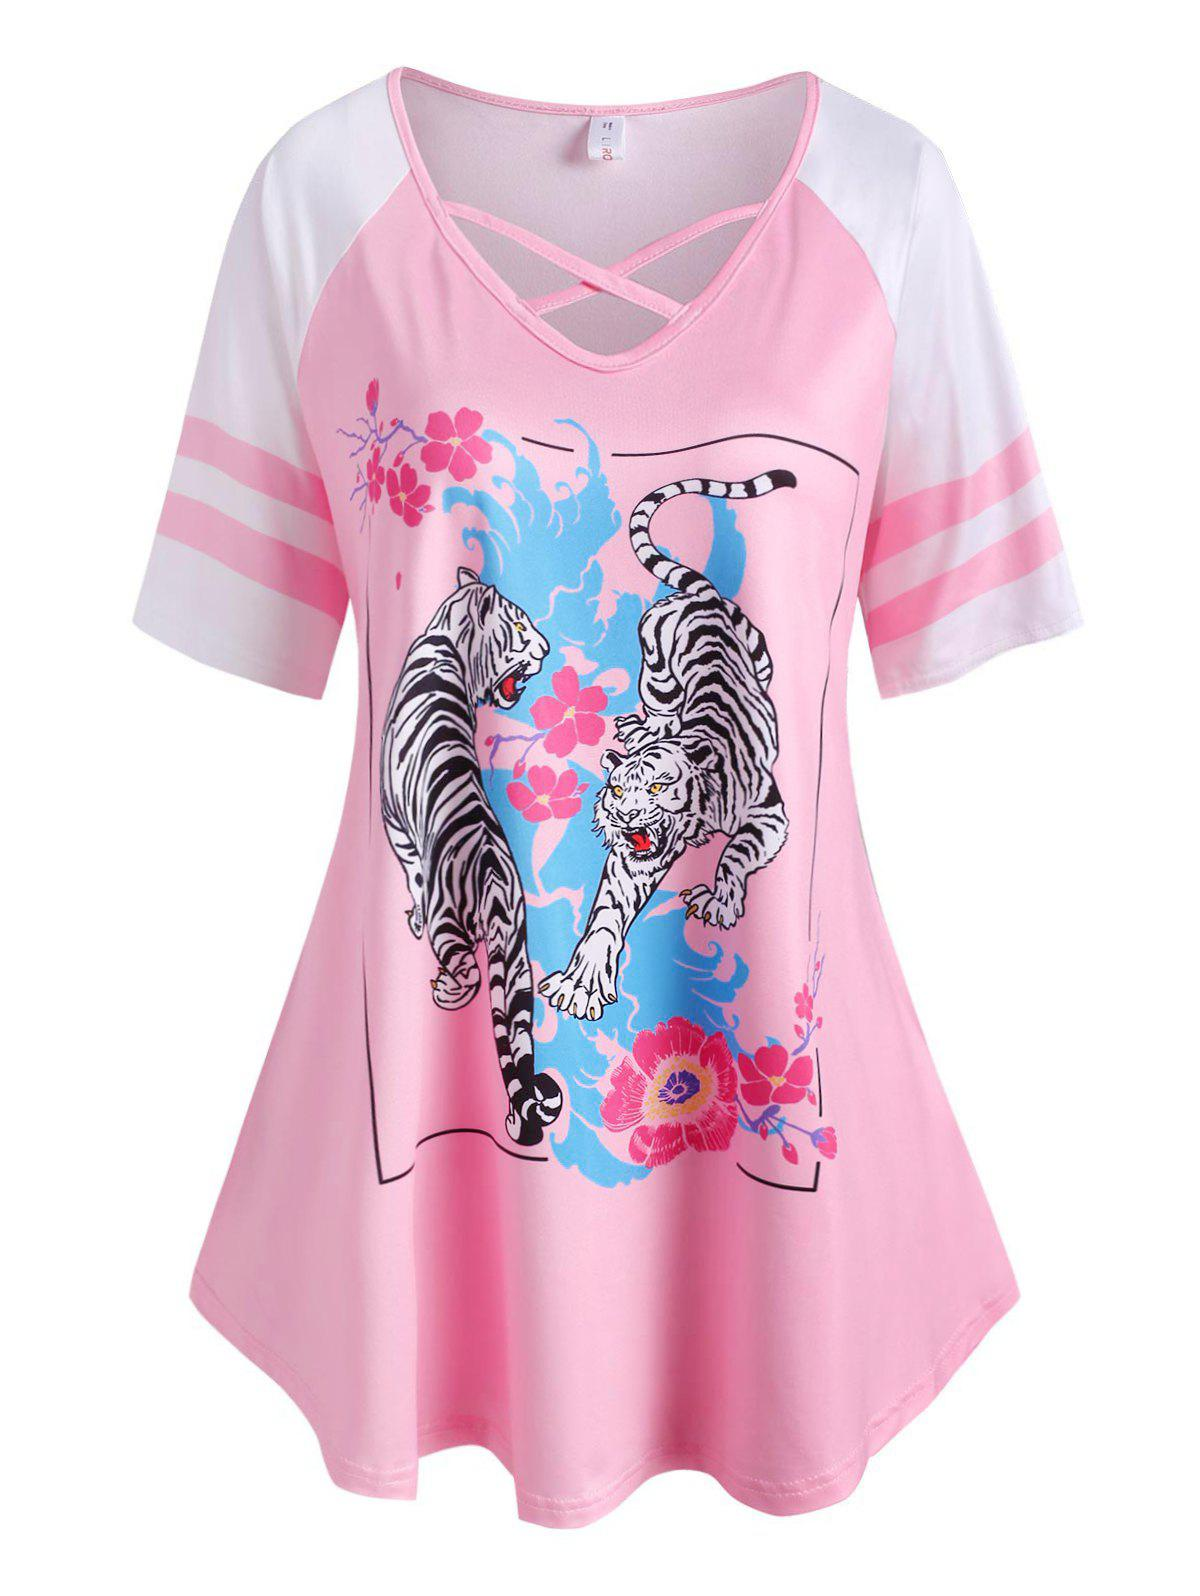 Plus Size Flower Tiger Print Criss Cross Tunic Tee - LIGHT PINK 5X